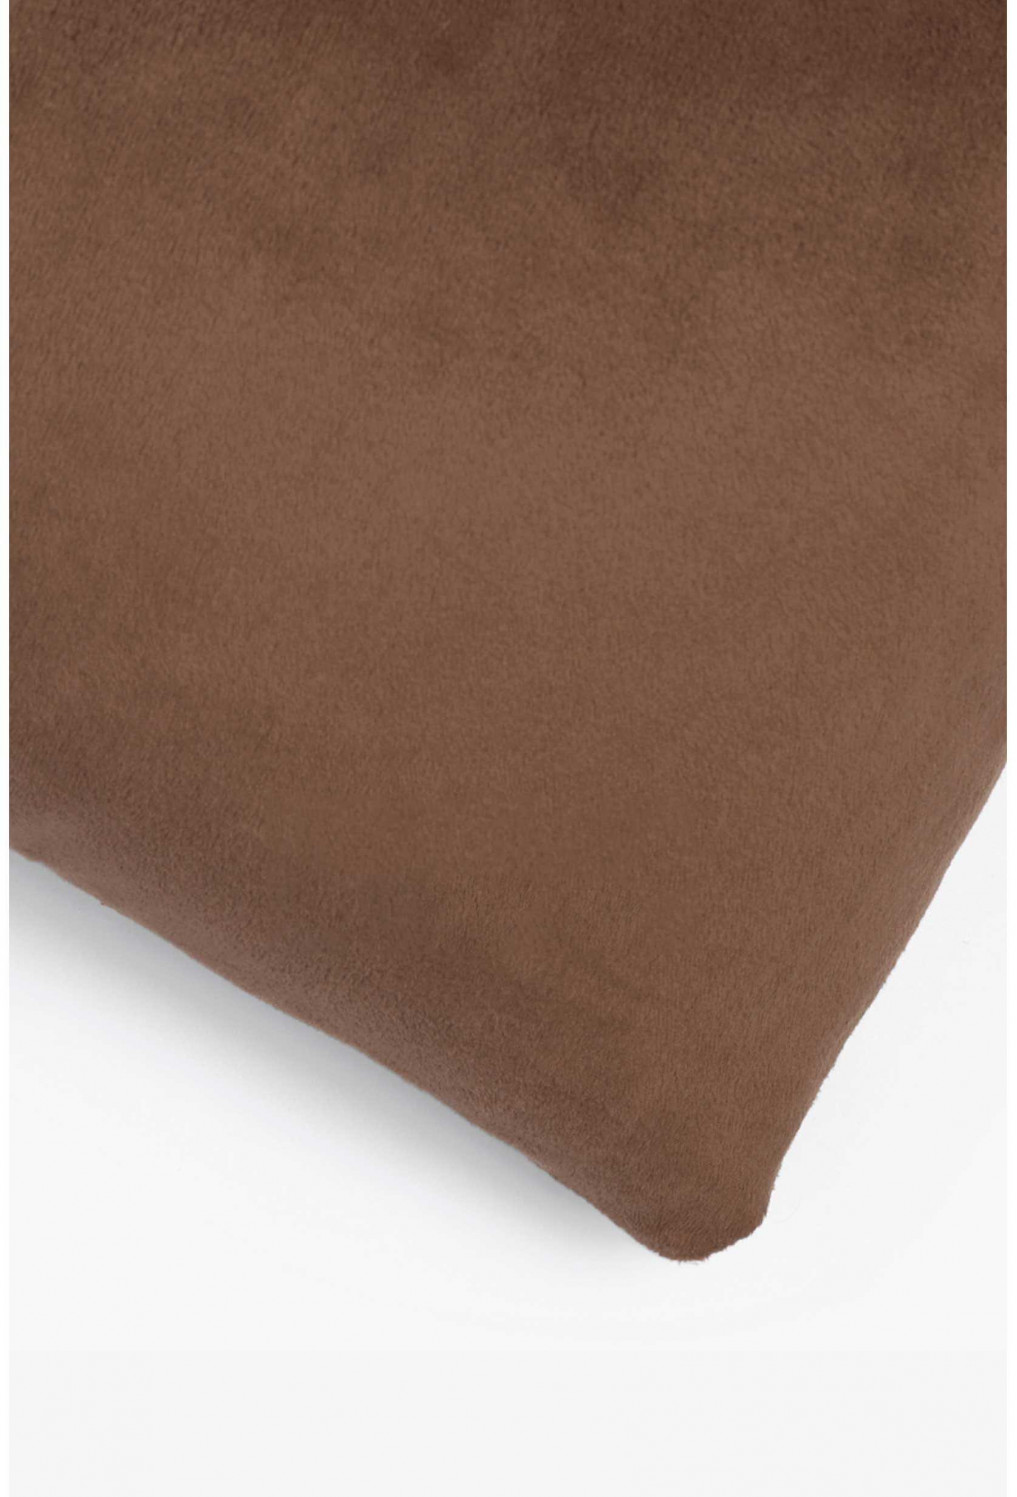 Cushion cover VELVET brown